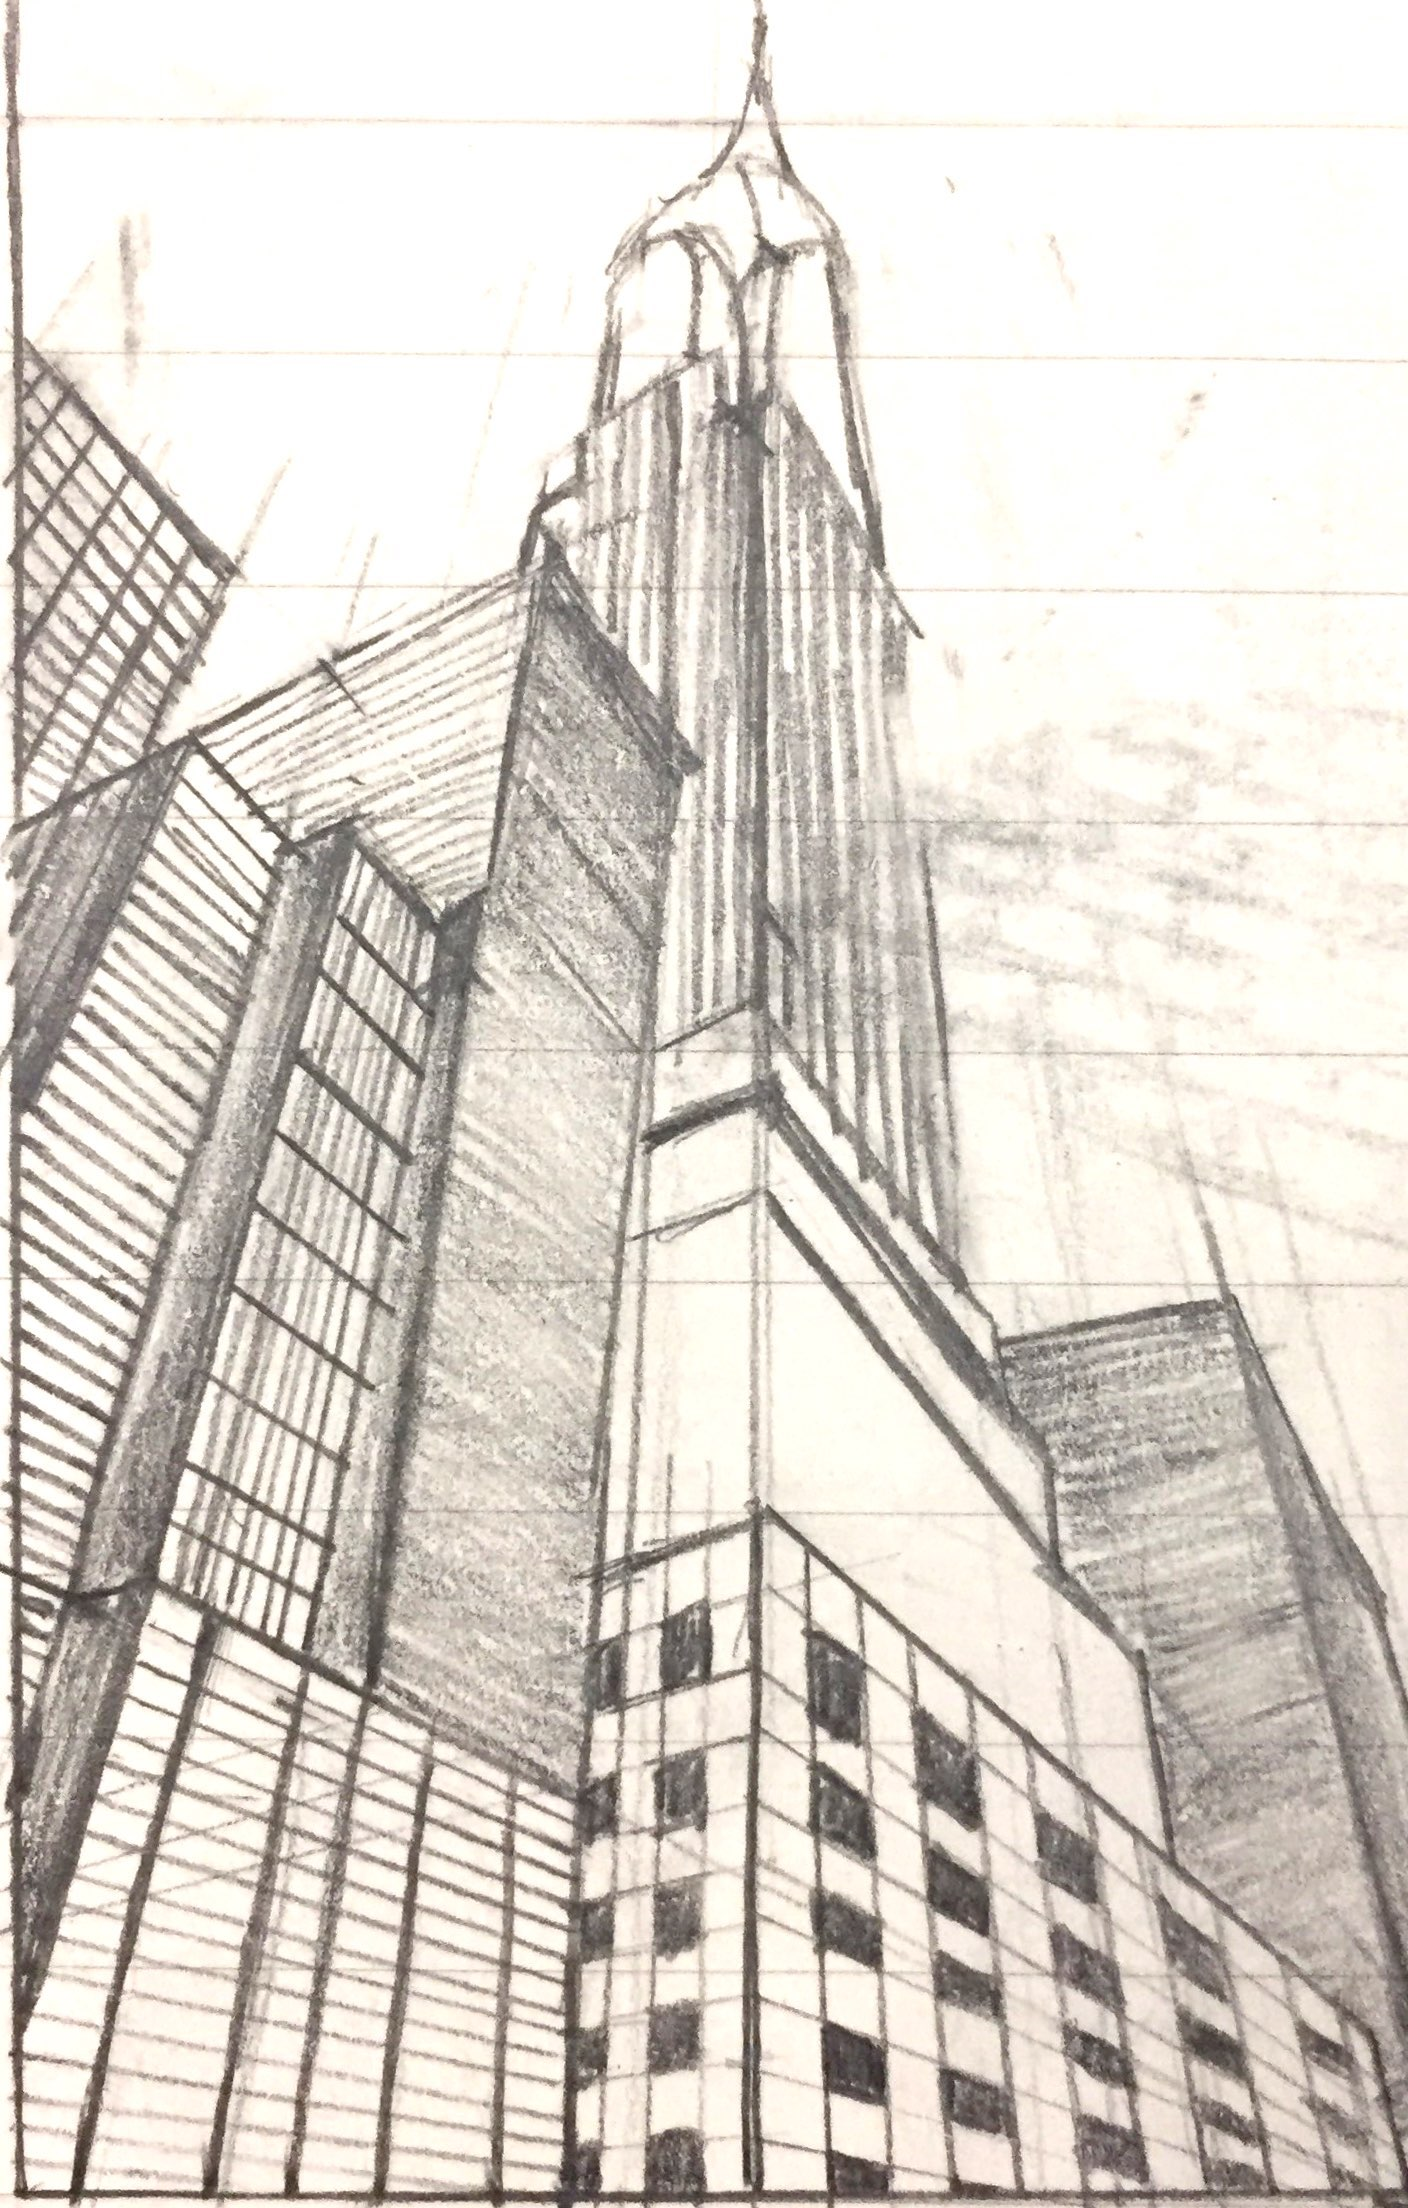 Week 5 Three Point Perspective